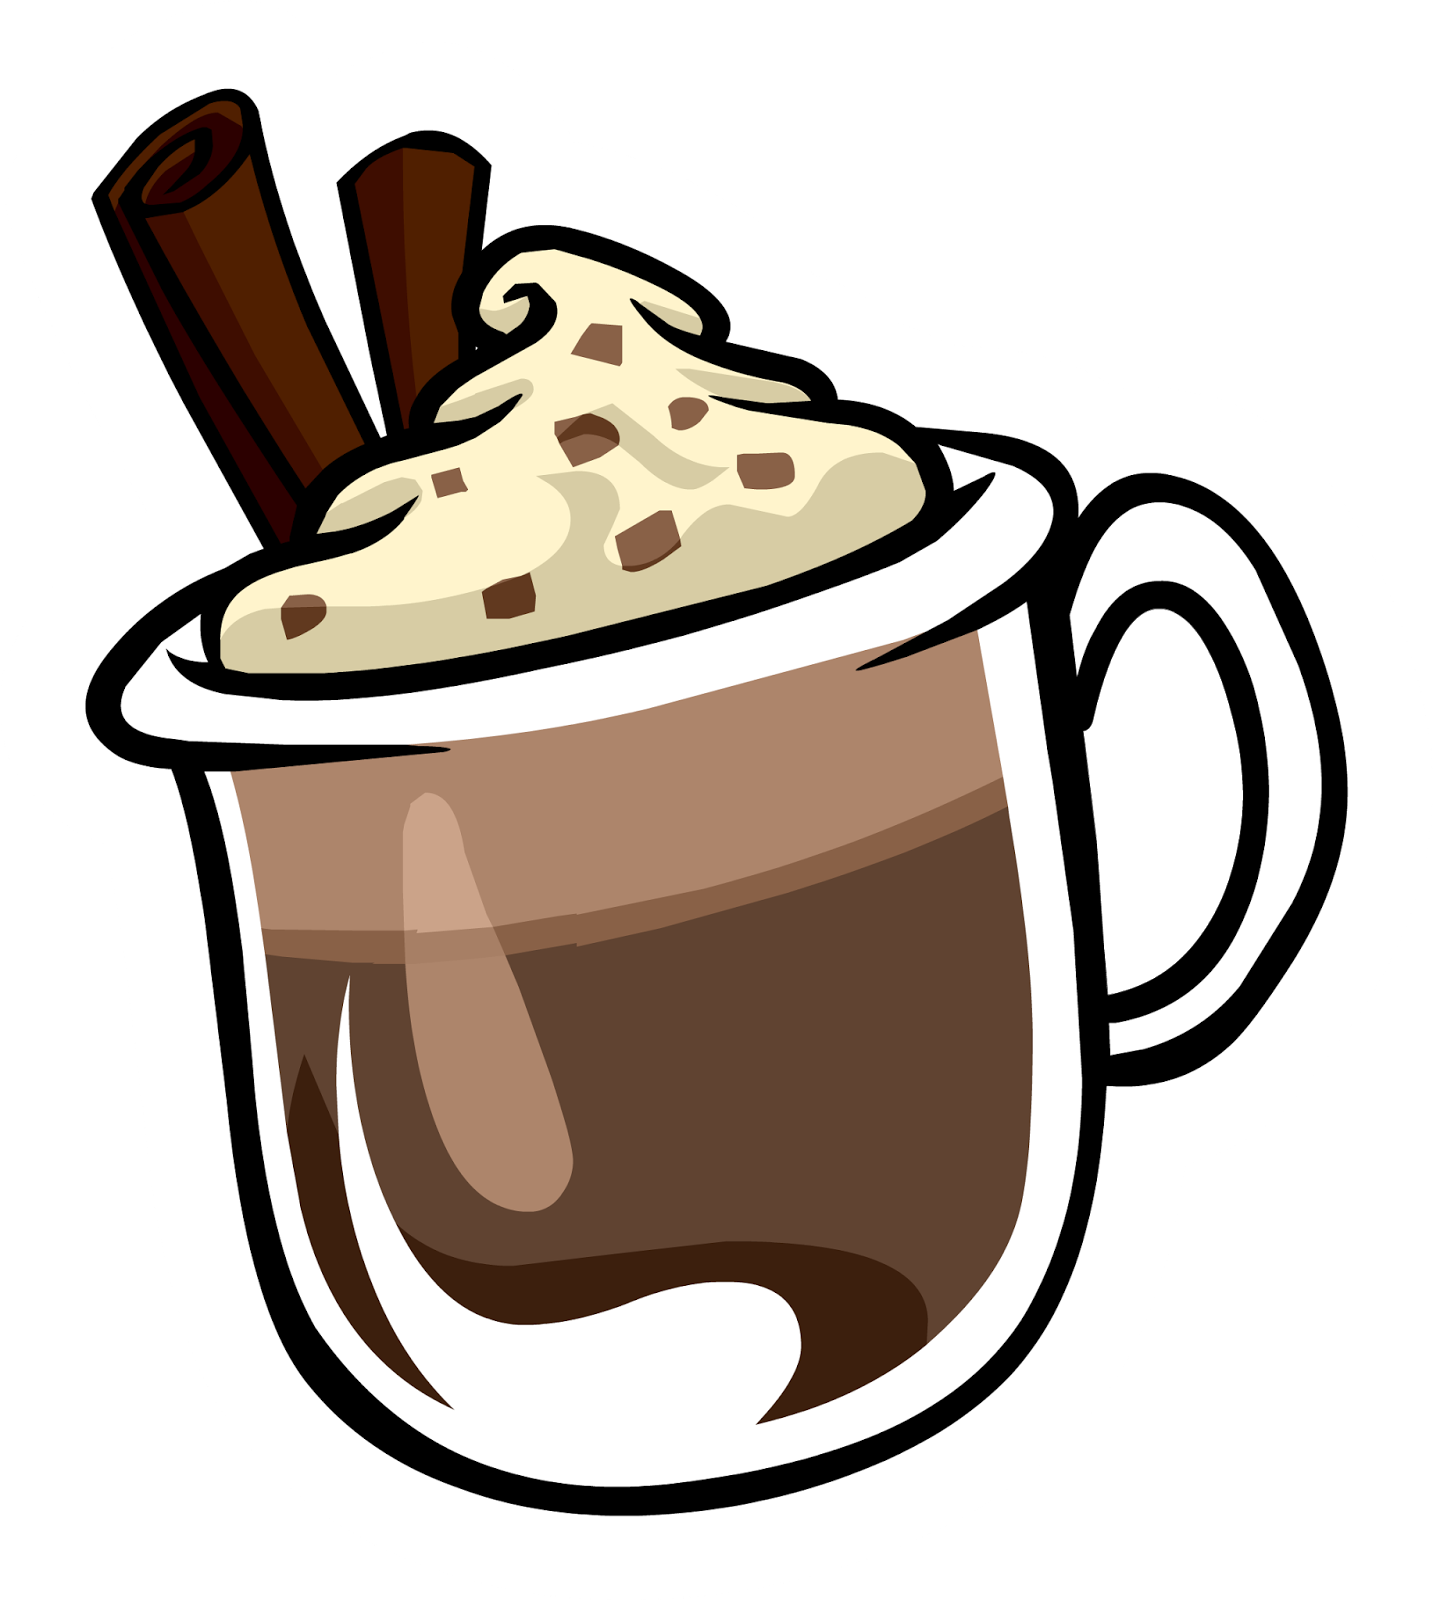 fall is here hot chocolate one of our favorite things to drink rh dastylishfoodie com hot chocolate clip art free drinking hot chocolate clipart